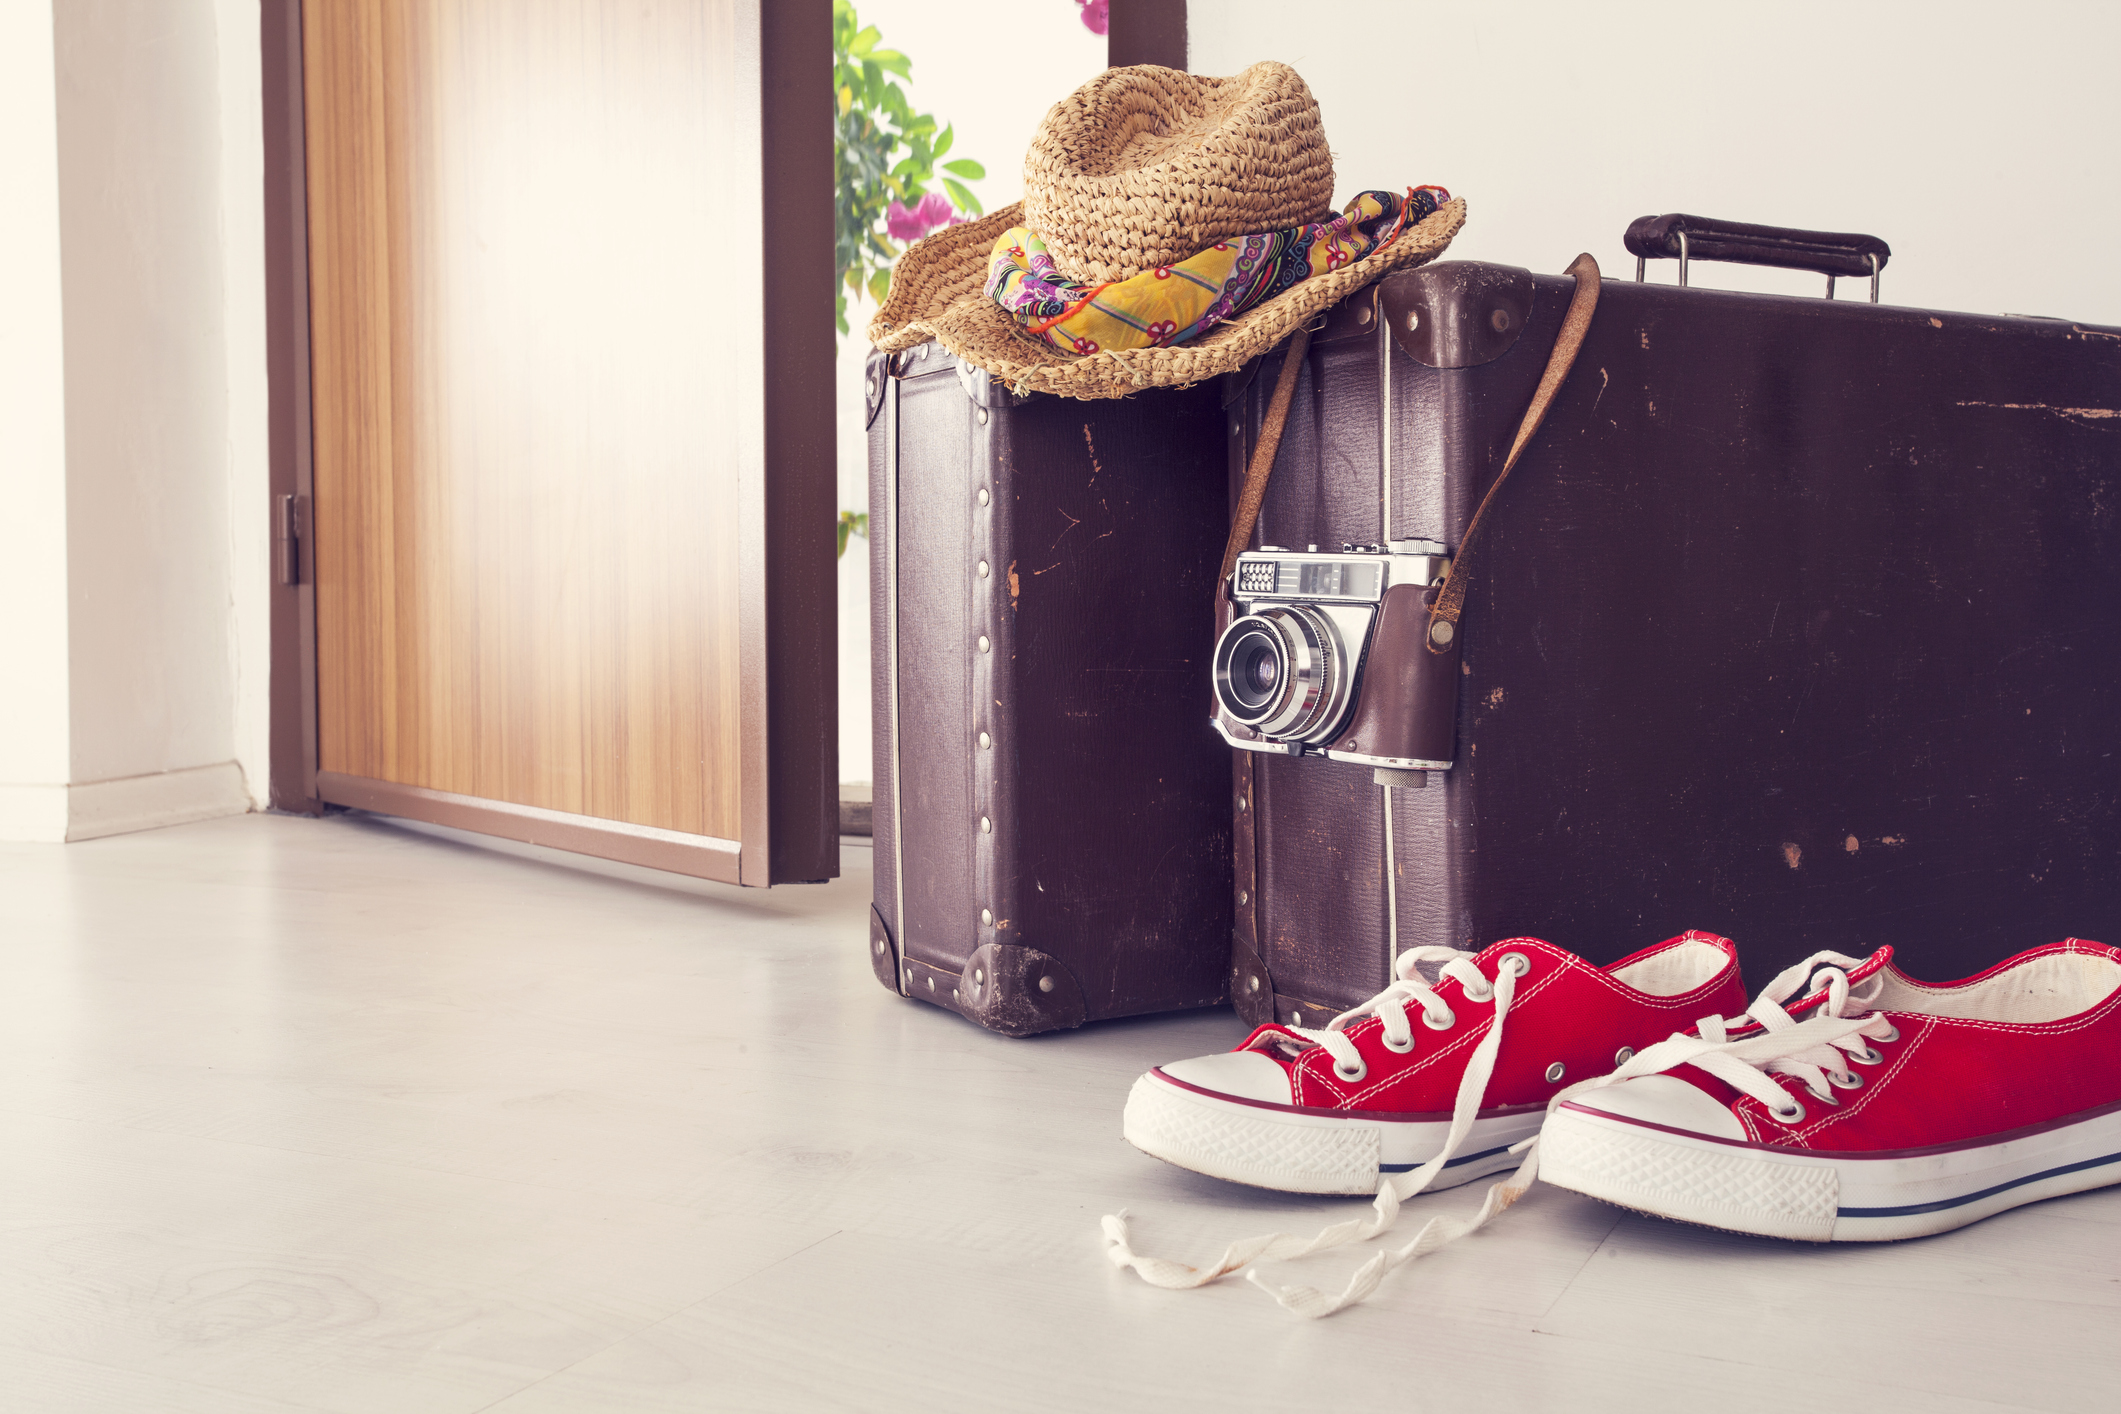 Vacation suitcase by front door